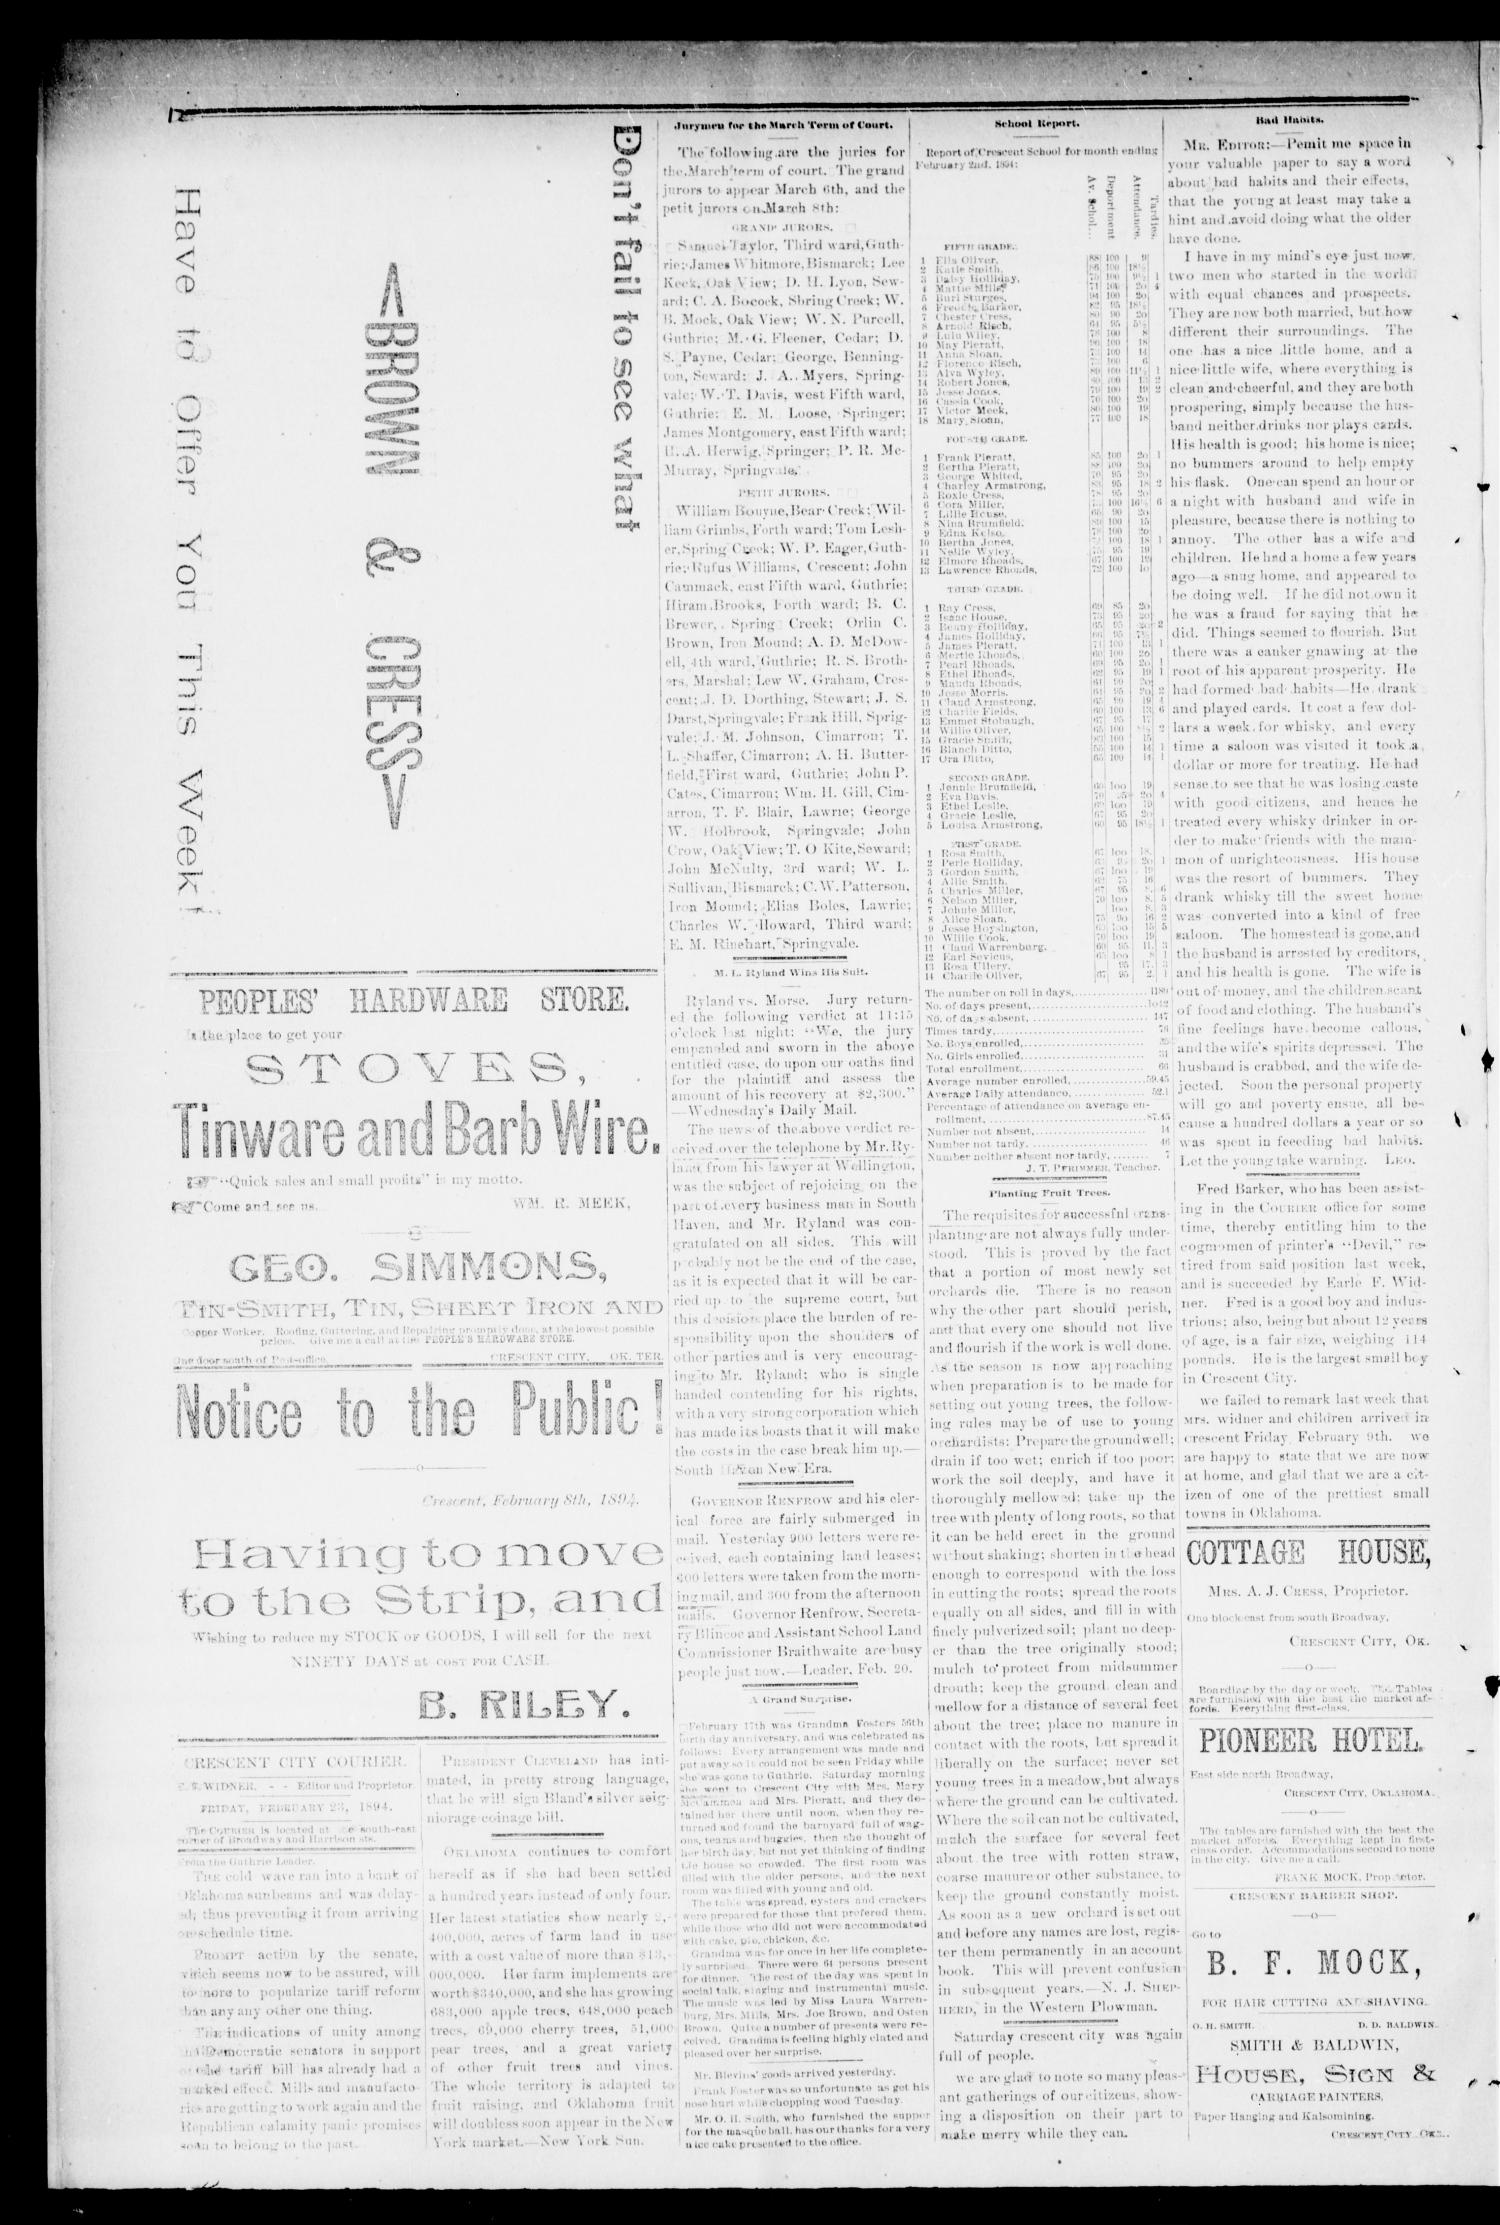 Crescent City Courier. (Crescent City, Okla. Terr.), Vol. 1, No. 7, Ed. 1 Friday, February 23, 1894                                                                                                      [Sequence #]: 2 of 4